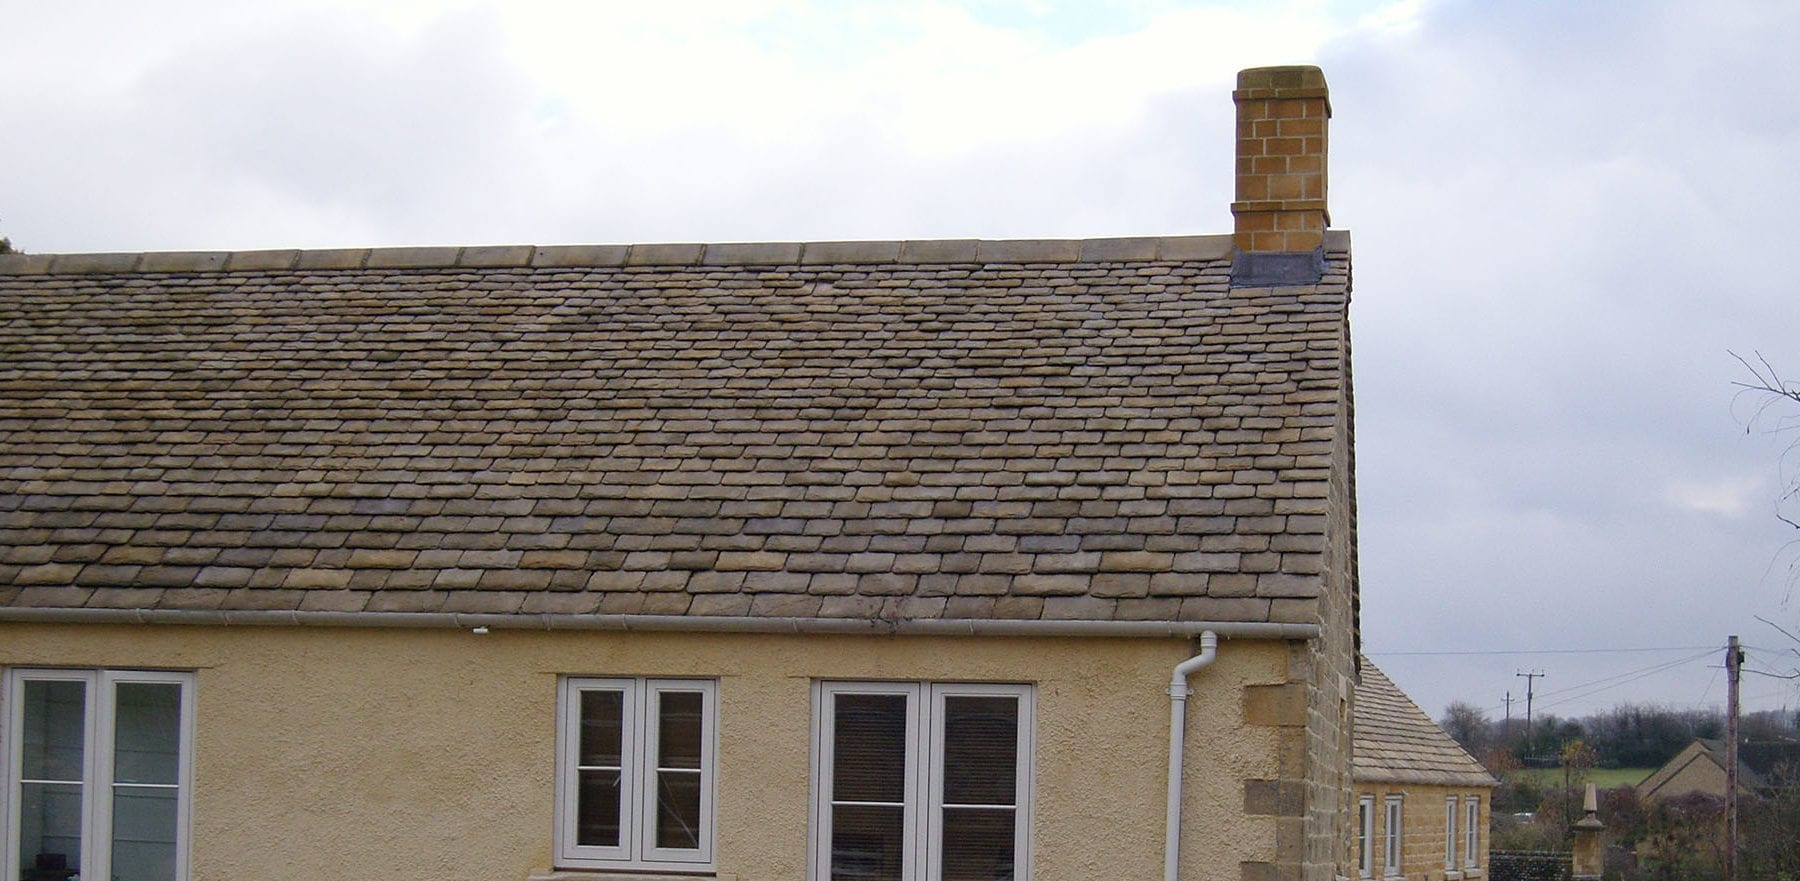 Lifestiles - Natural Stone Aged Roof Tiles - Cirencester, England 5